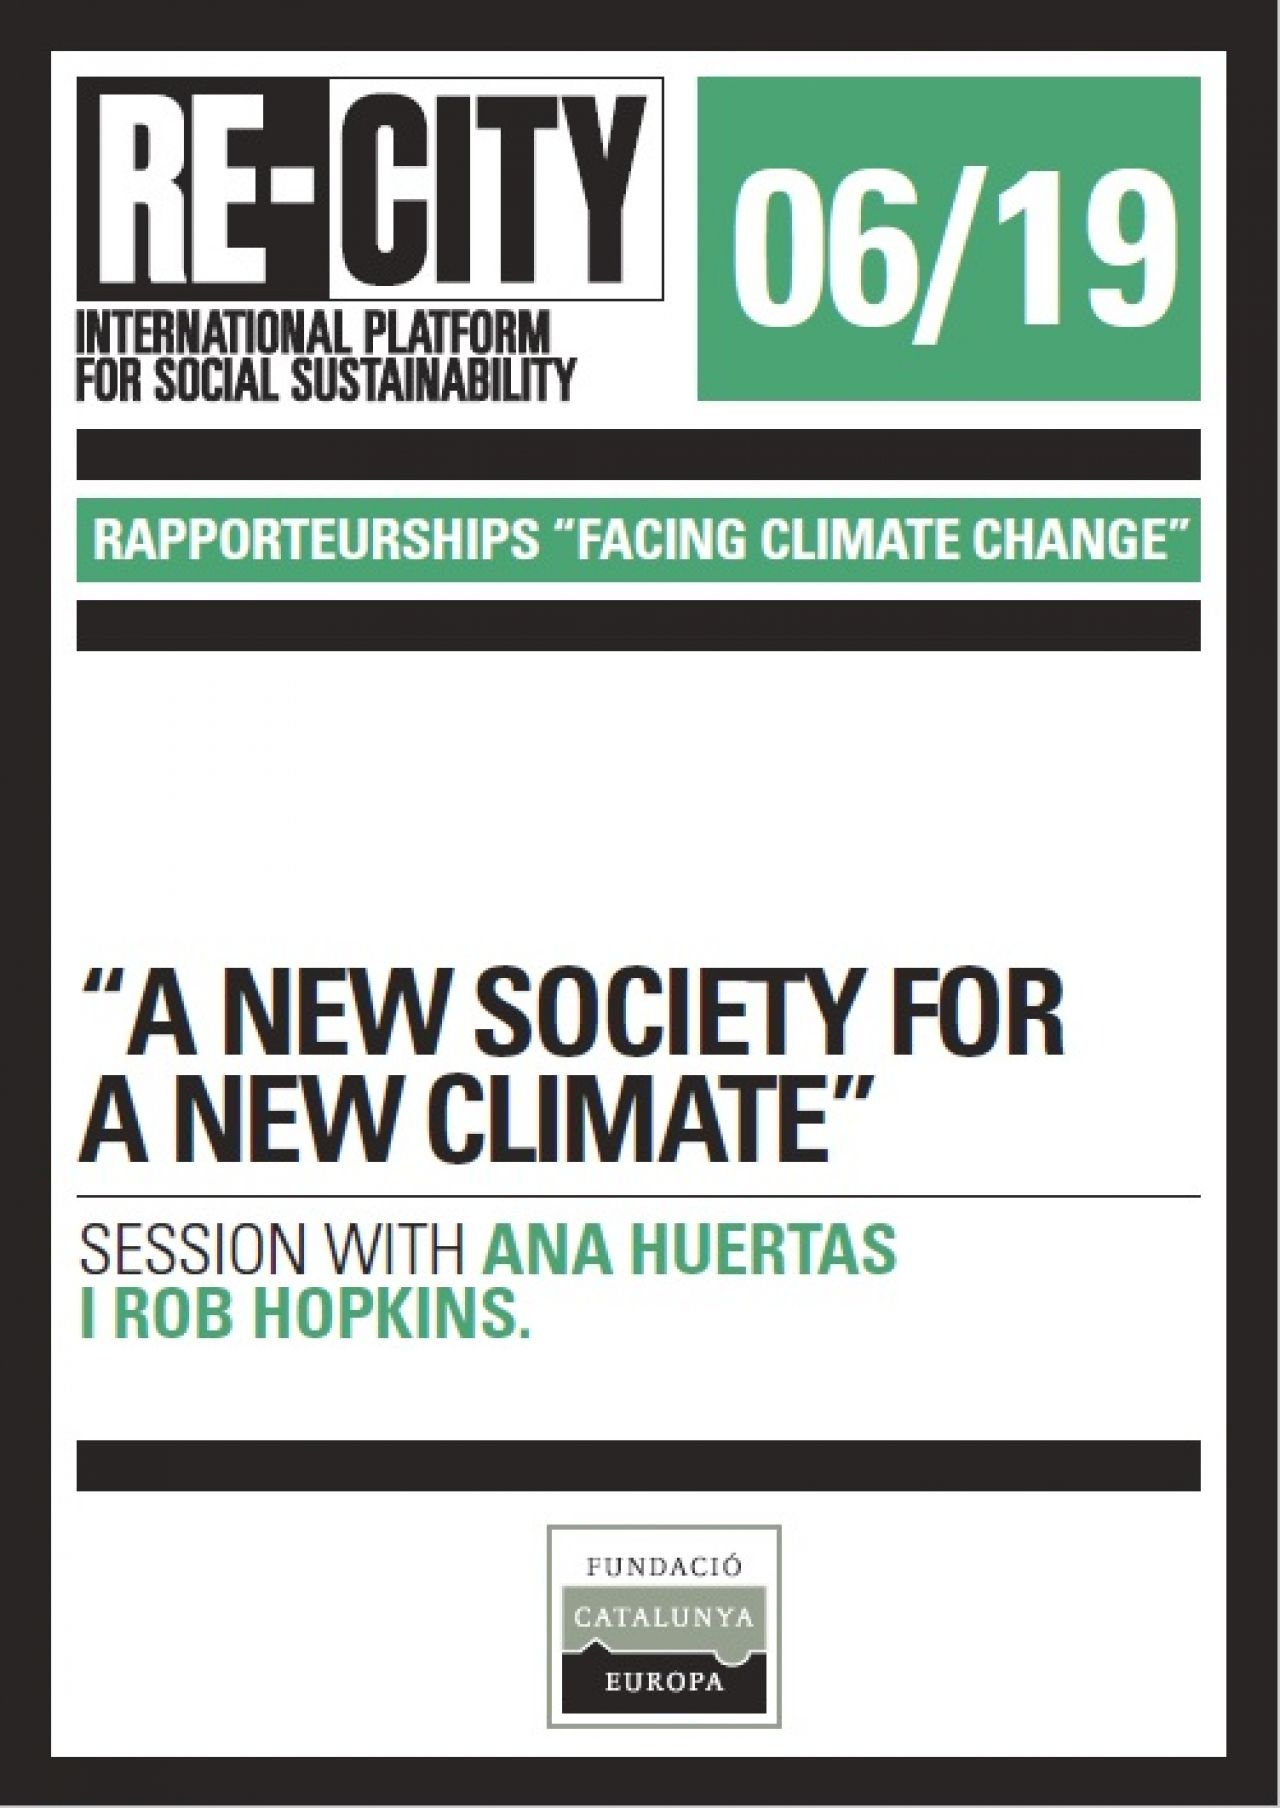 A new society for a new climate. Ana Huertas and Rob Hopkins (eng)